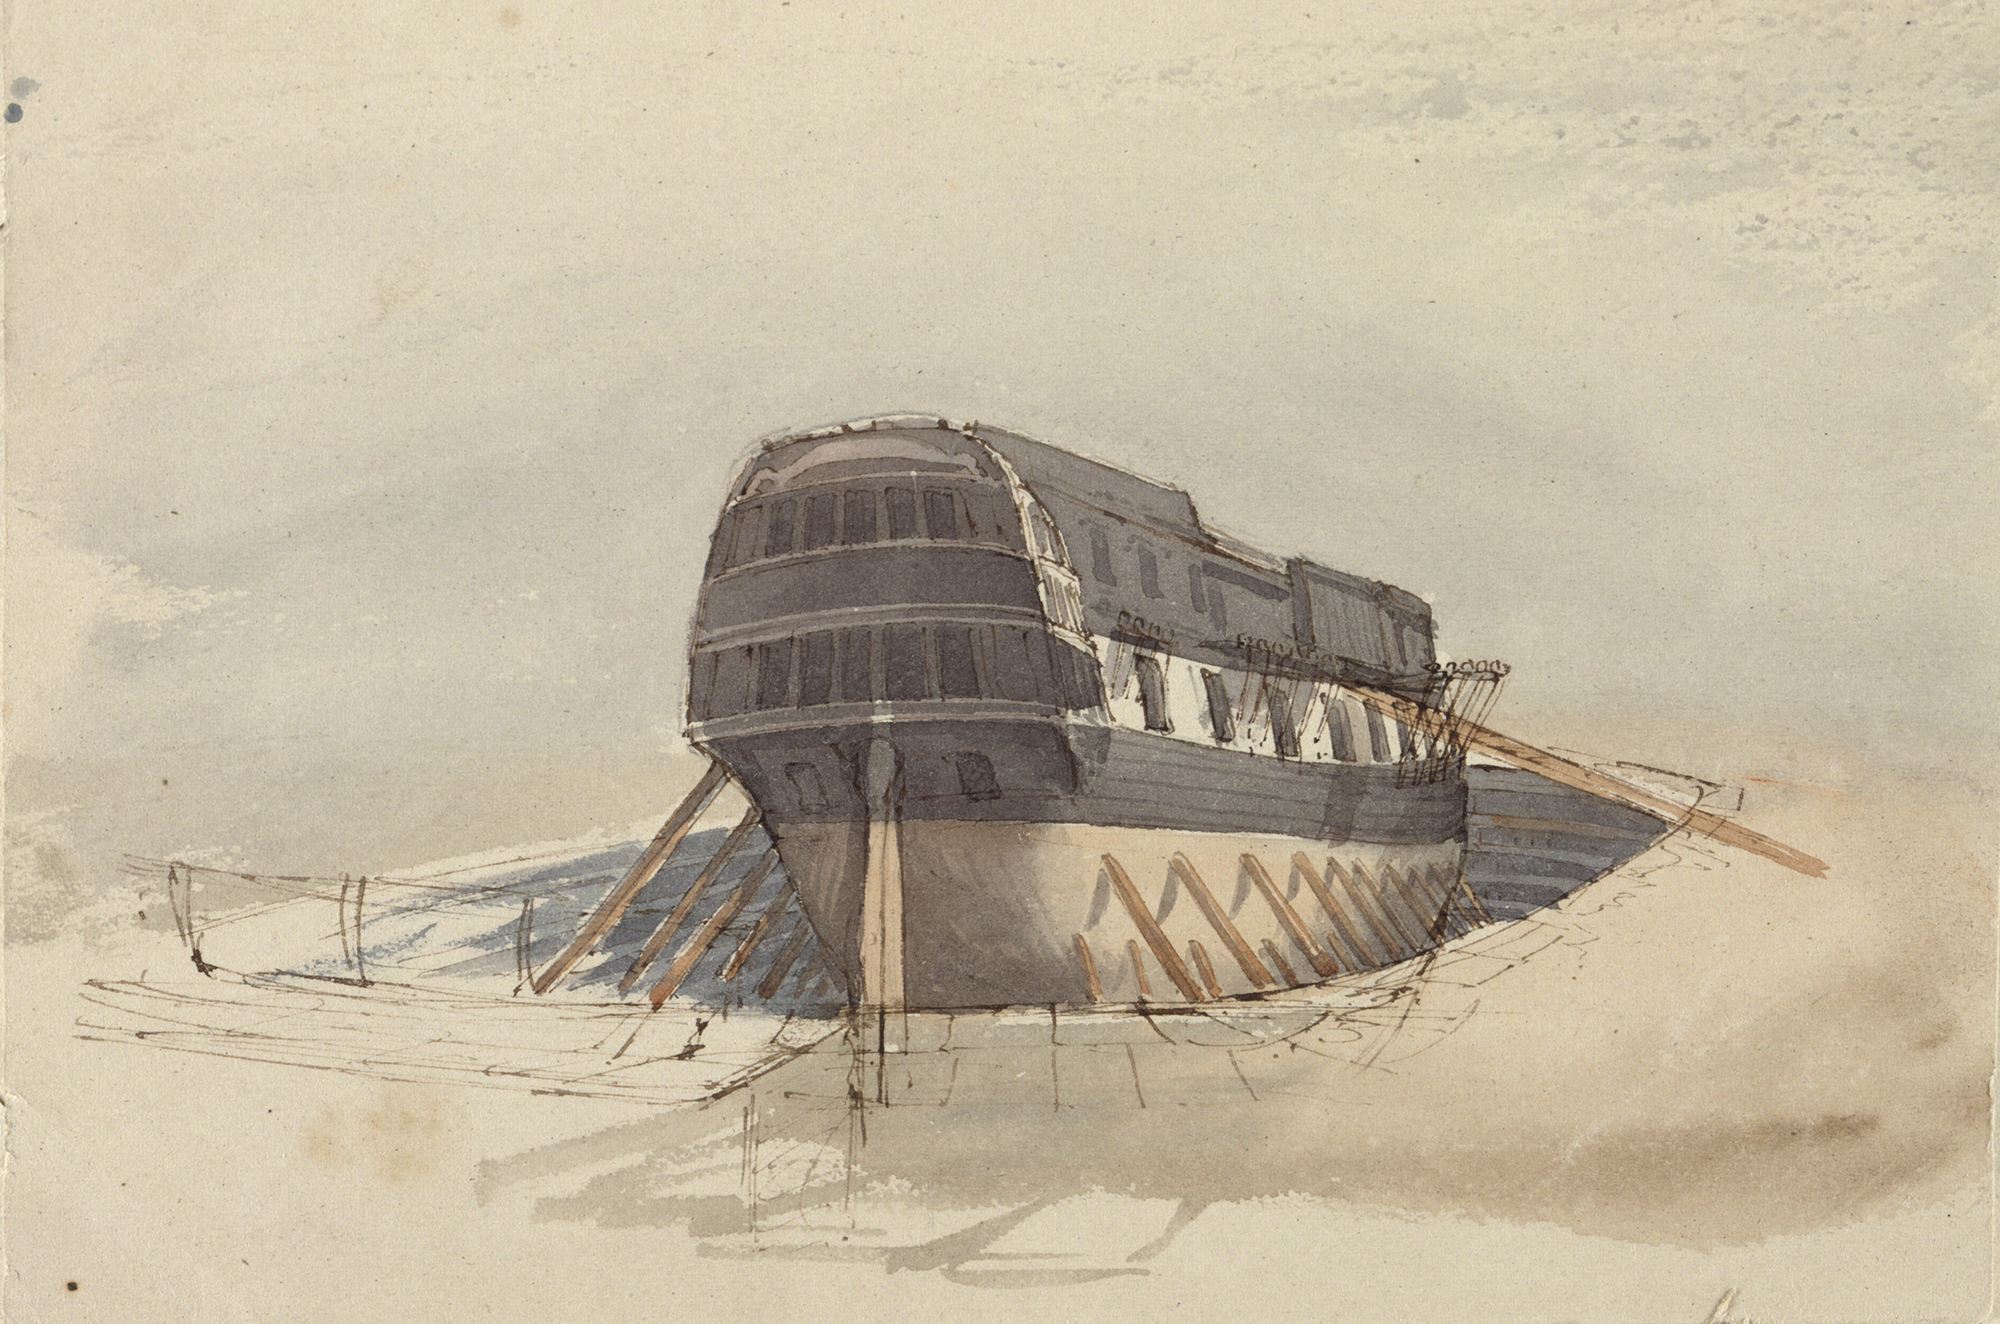 H.M.S. Rattlesnake, 1846, unfinished watercolour by Owen Stanley